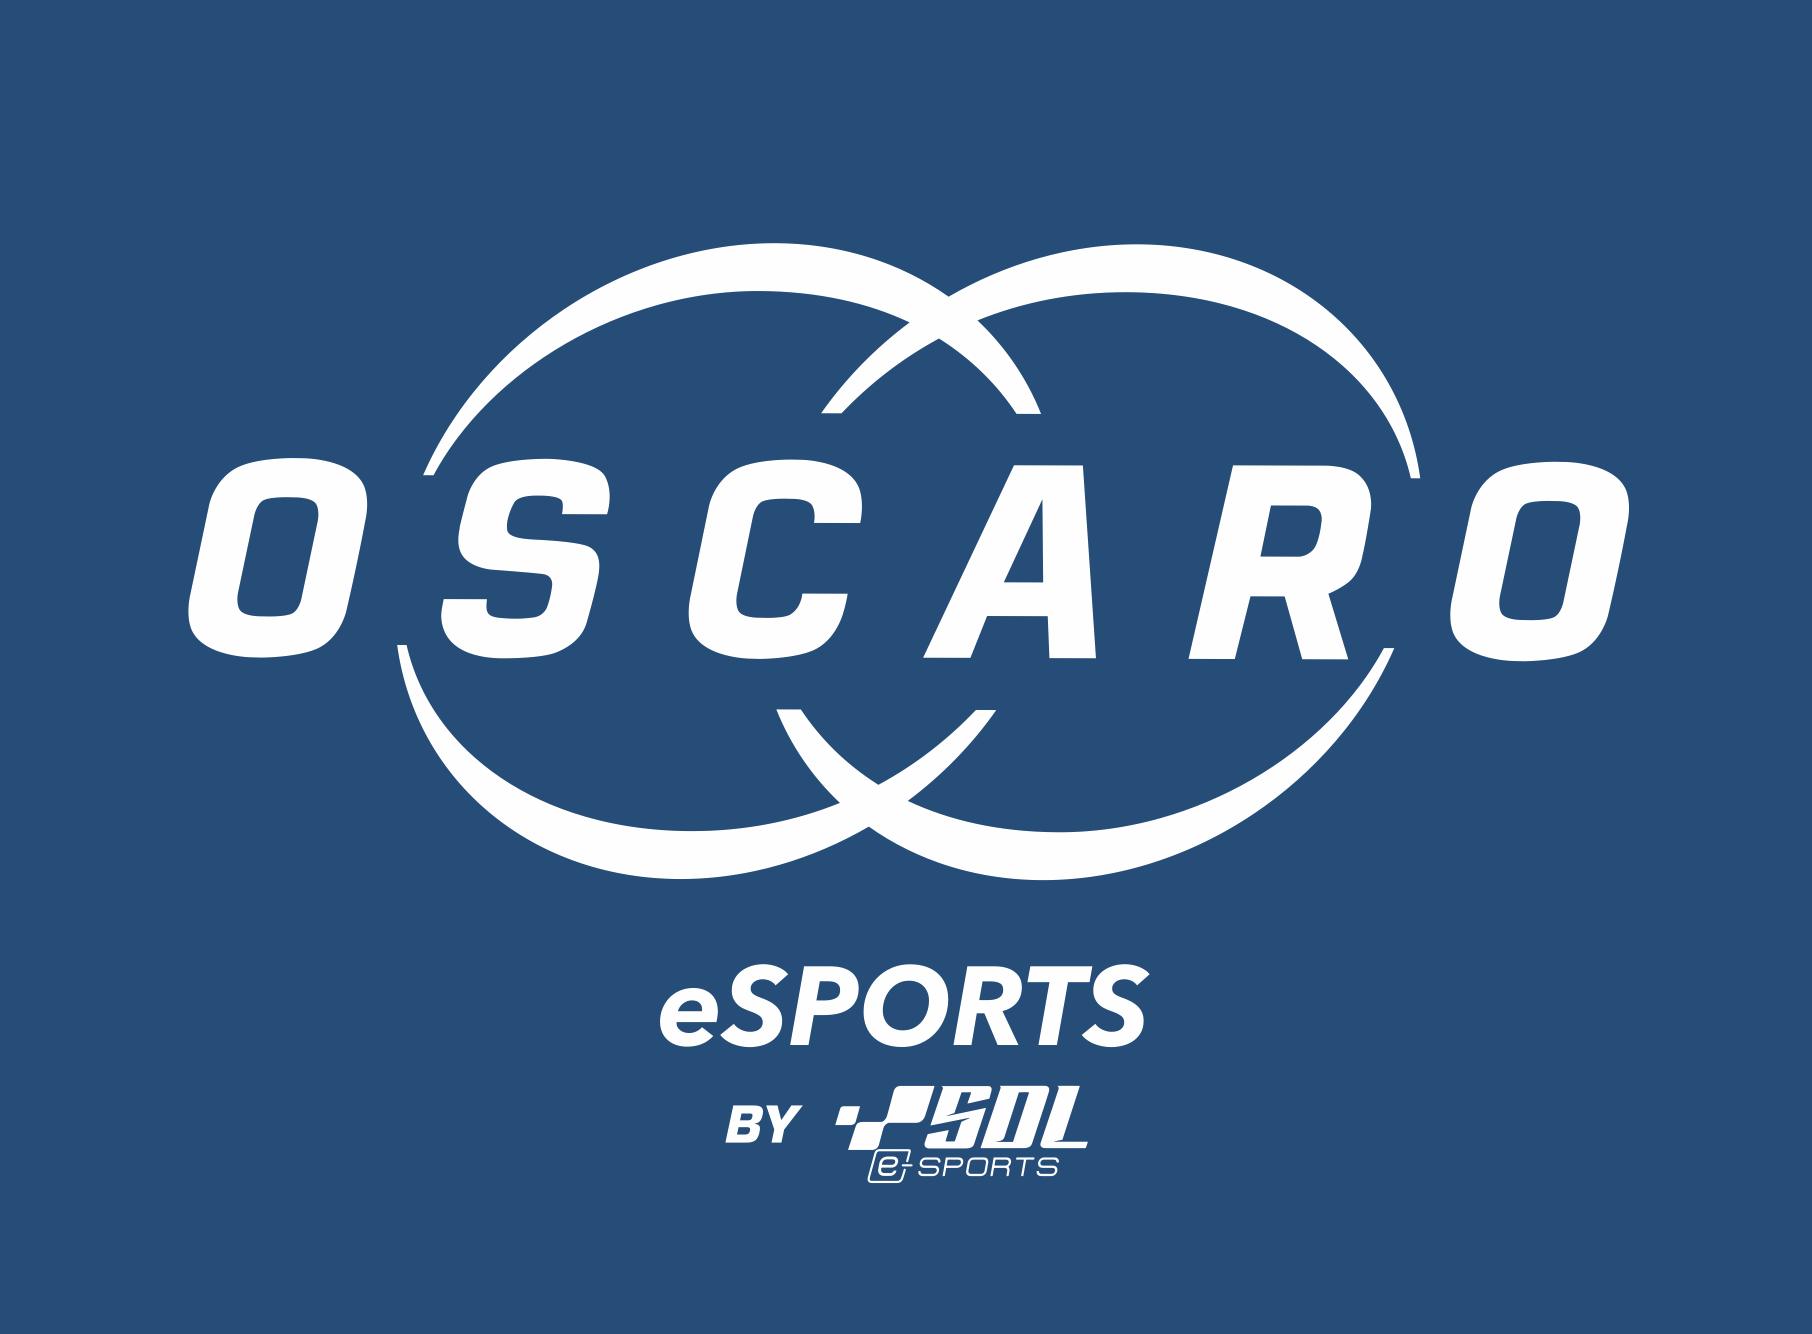 esports oscaro s 39 associe avec sdl esports le mag jeux high tech. Black Bedroom Furniture Sets. Home Design Ideas